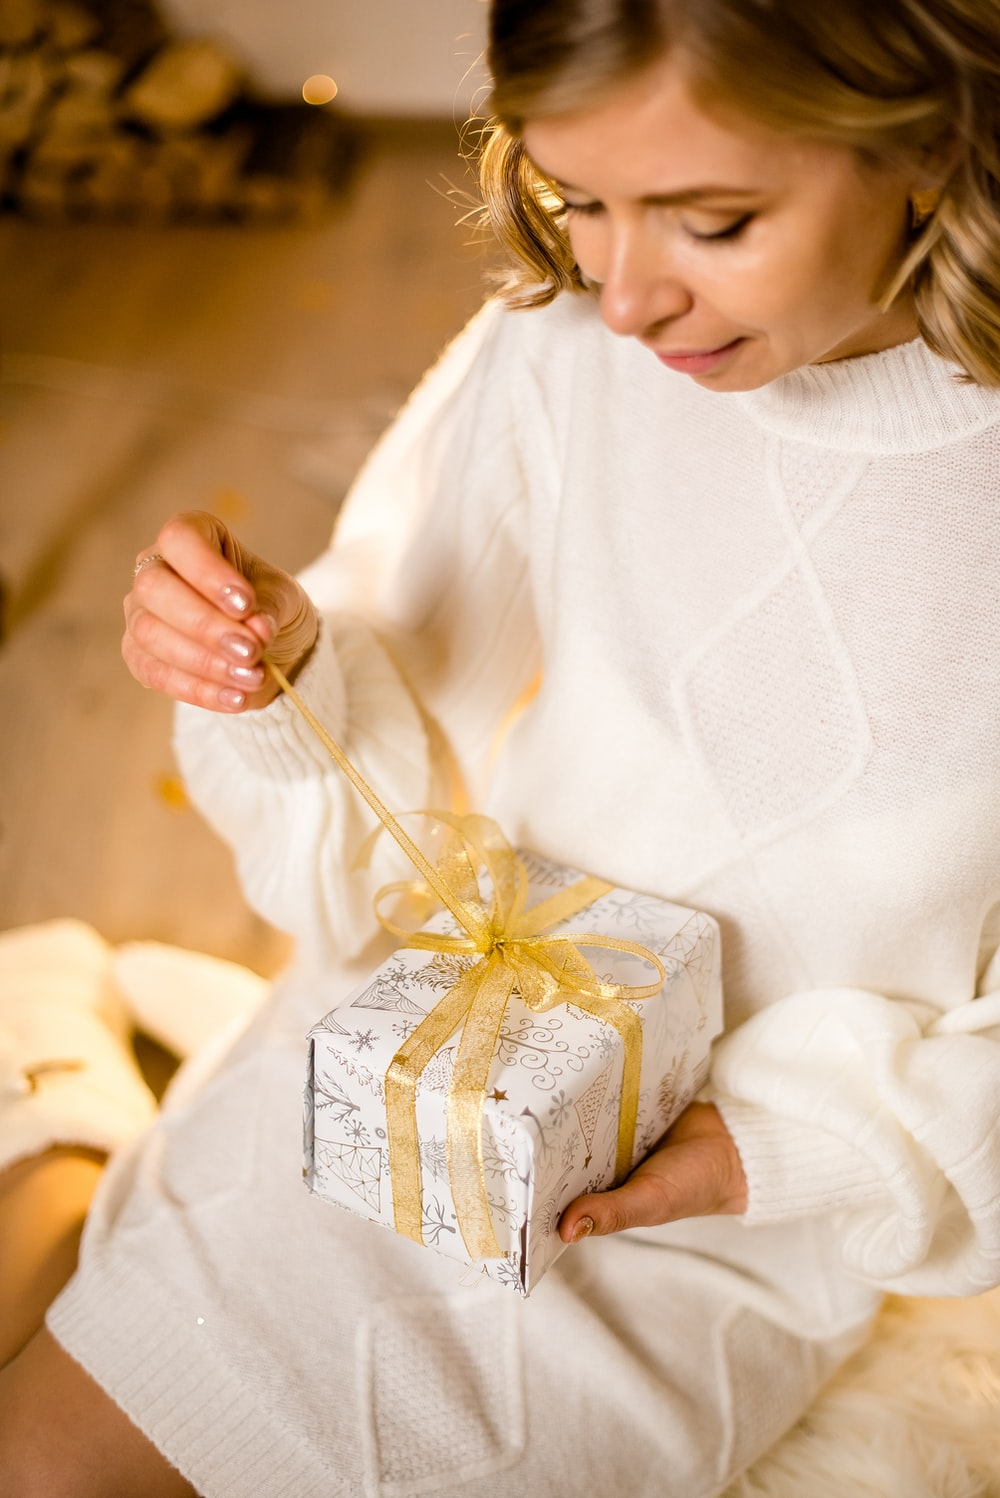 woman in white long sleeve shirt holding white and blue floral gift box